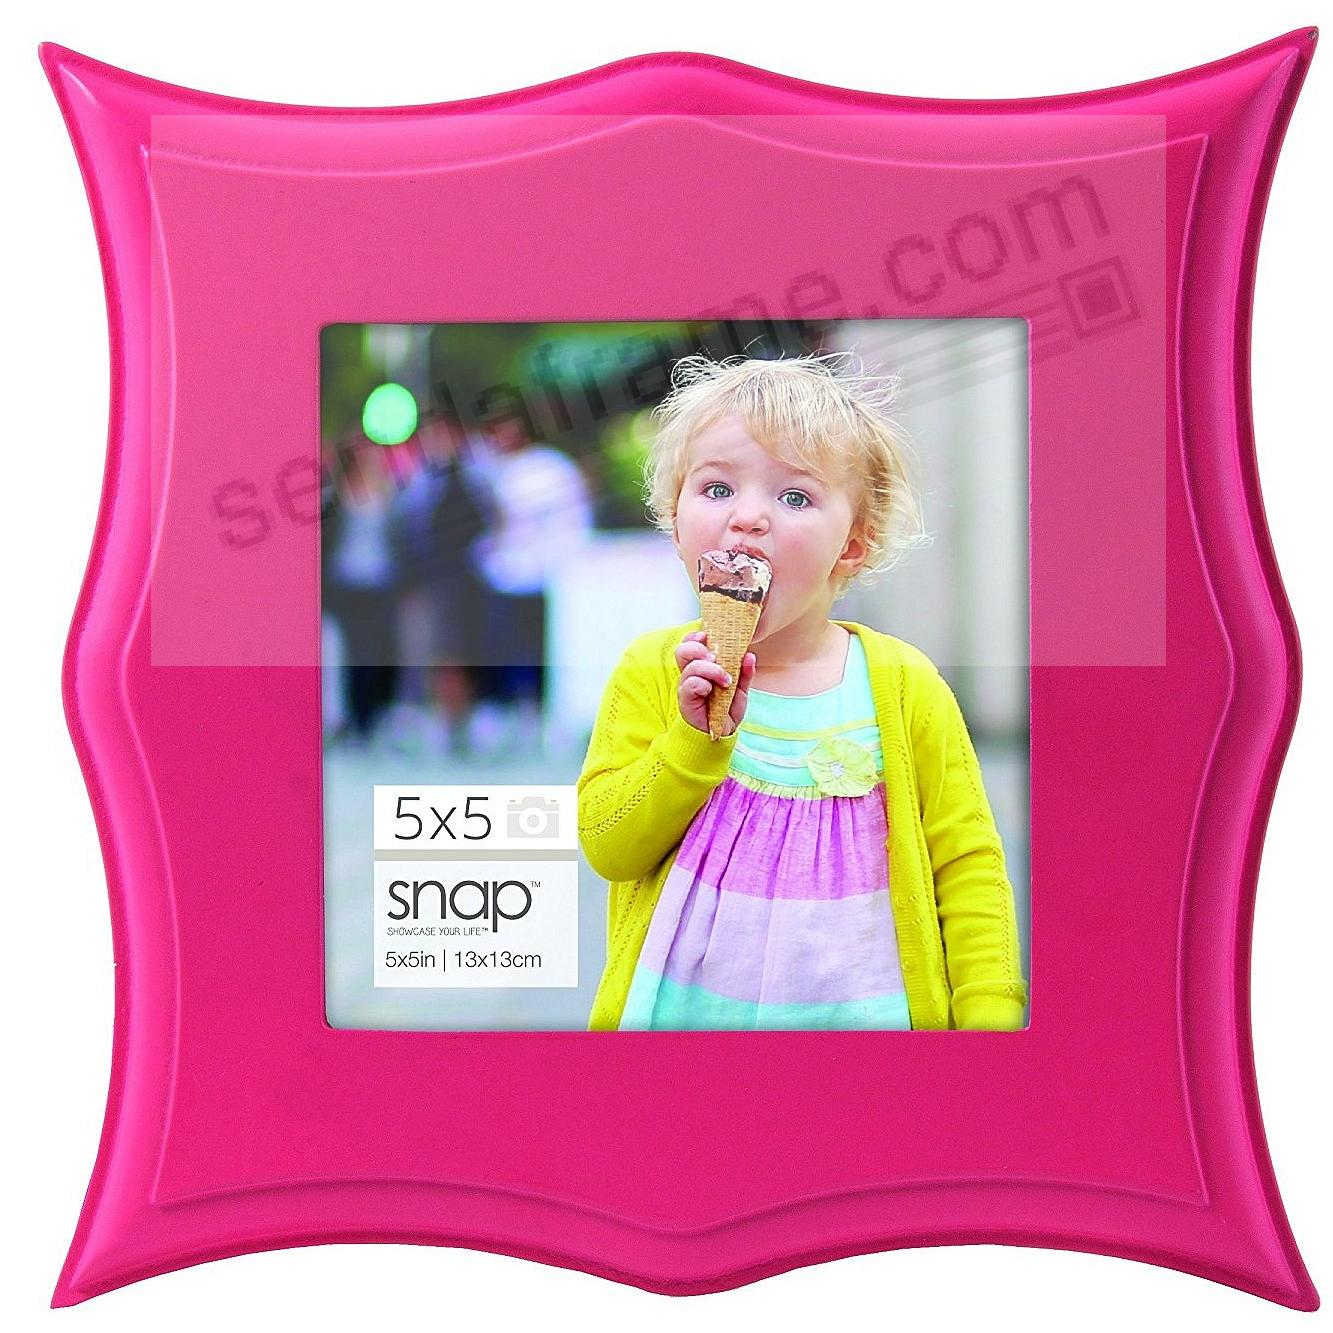 PINK POINTED SCALLOP 5x5 frame by SNAP®